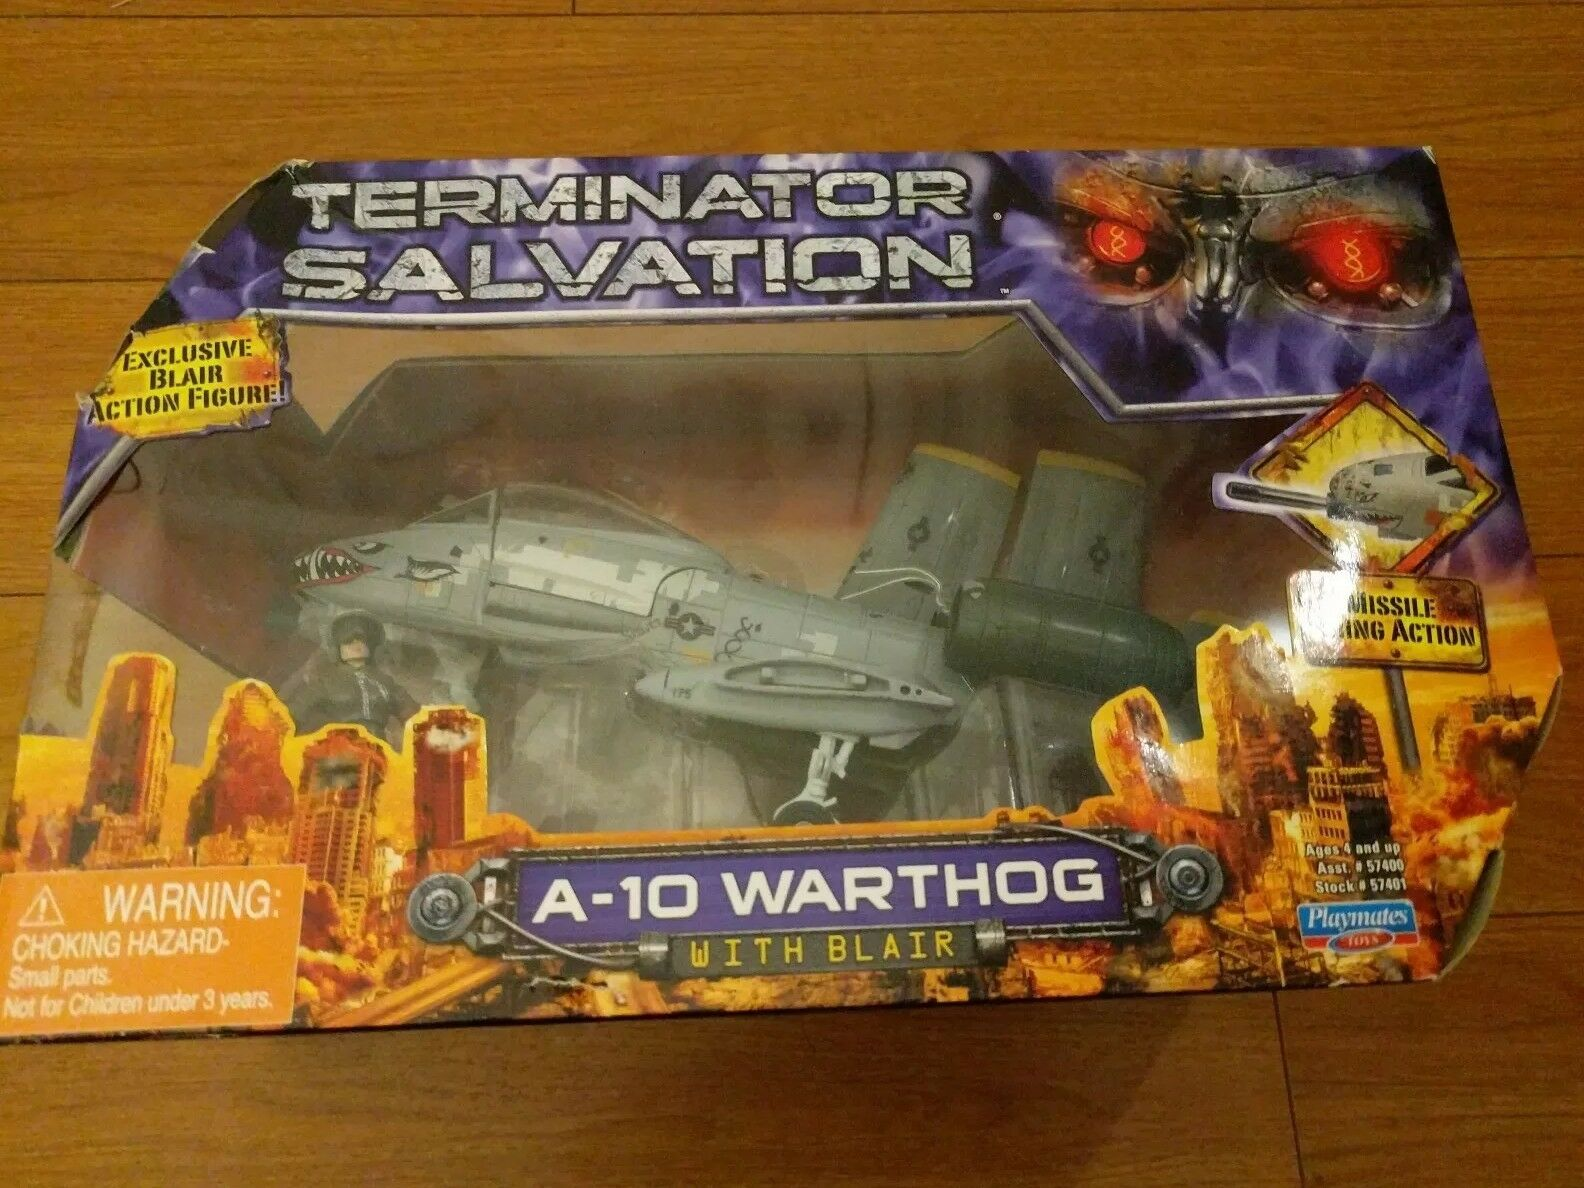 The Terminator Rescue  a - 10  The Wild Jabal, Blair 's exclusiva, New Image...